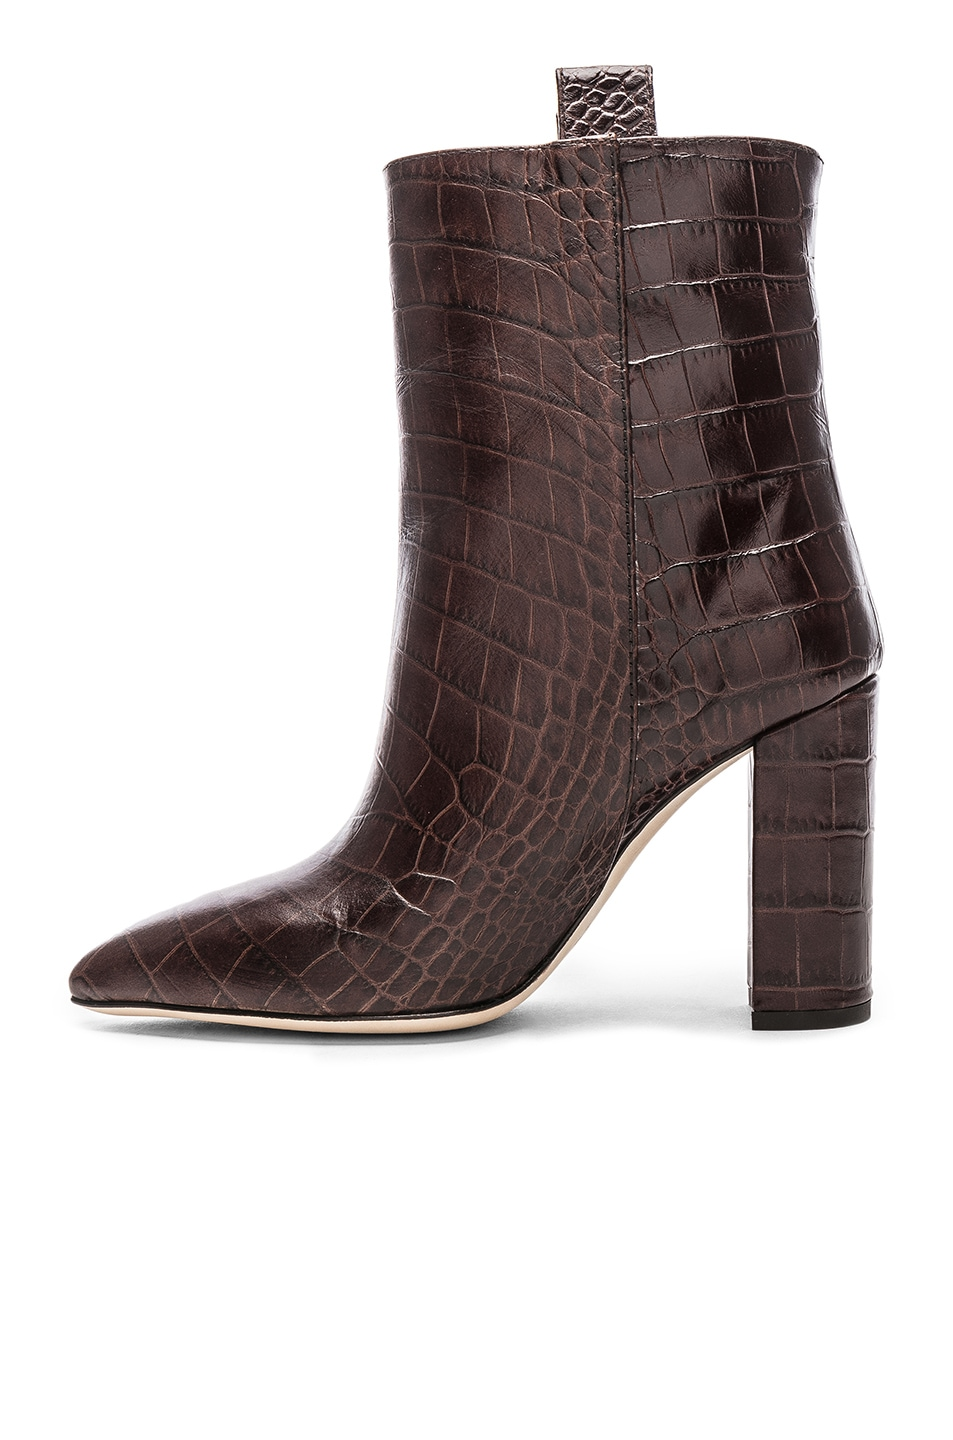 Image 5 of Paris Texas Ankle Boot in Dark Brown Croc